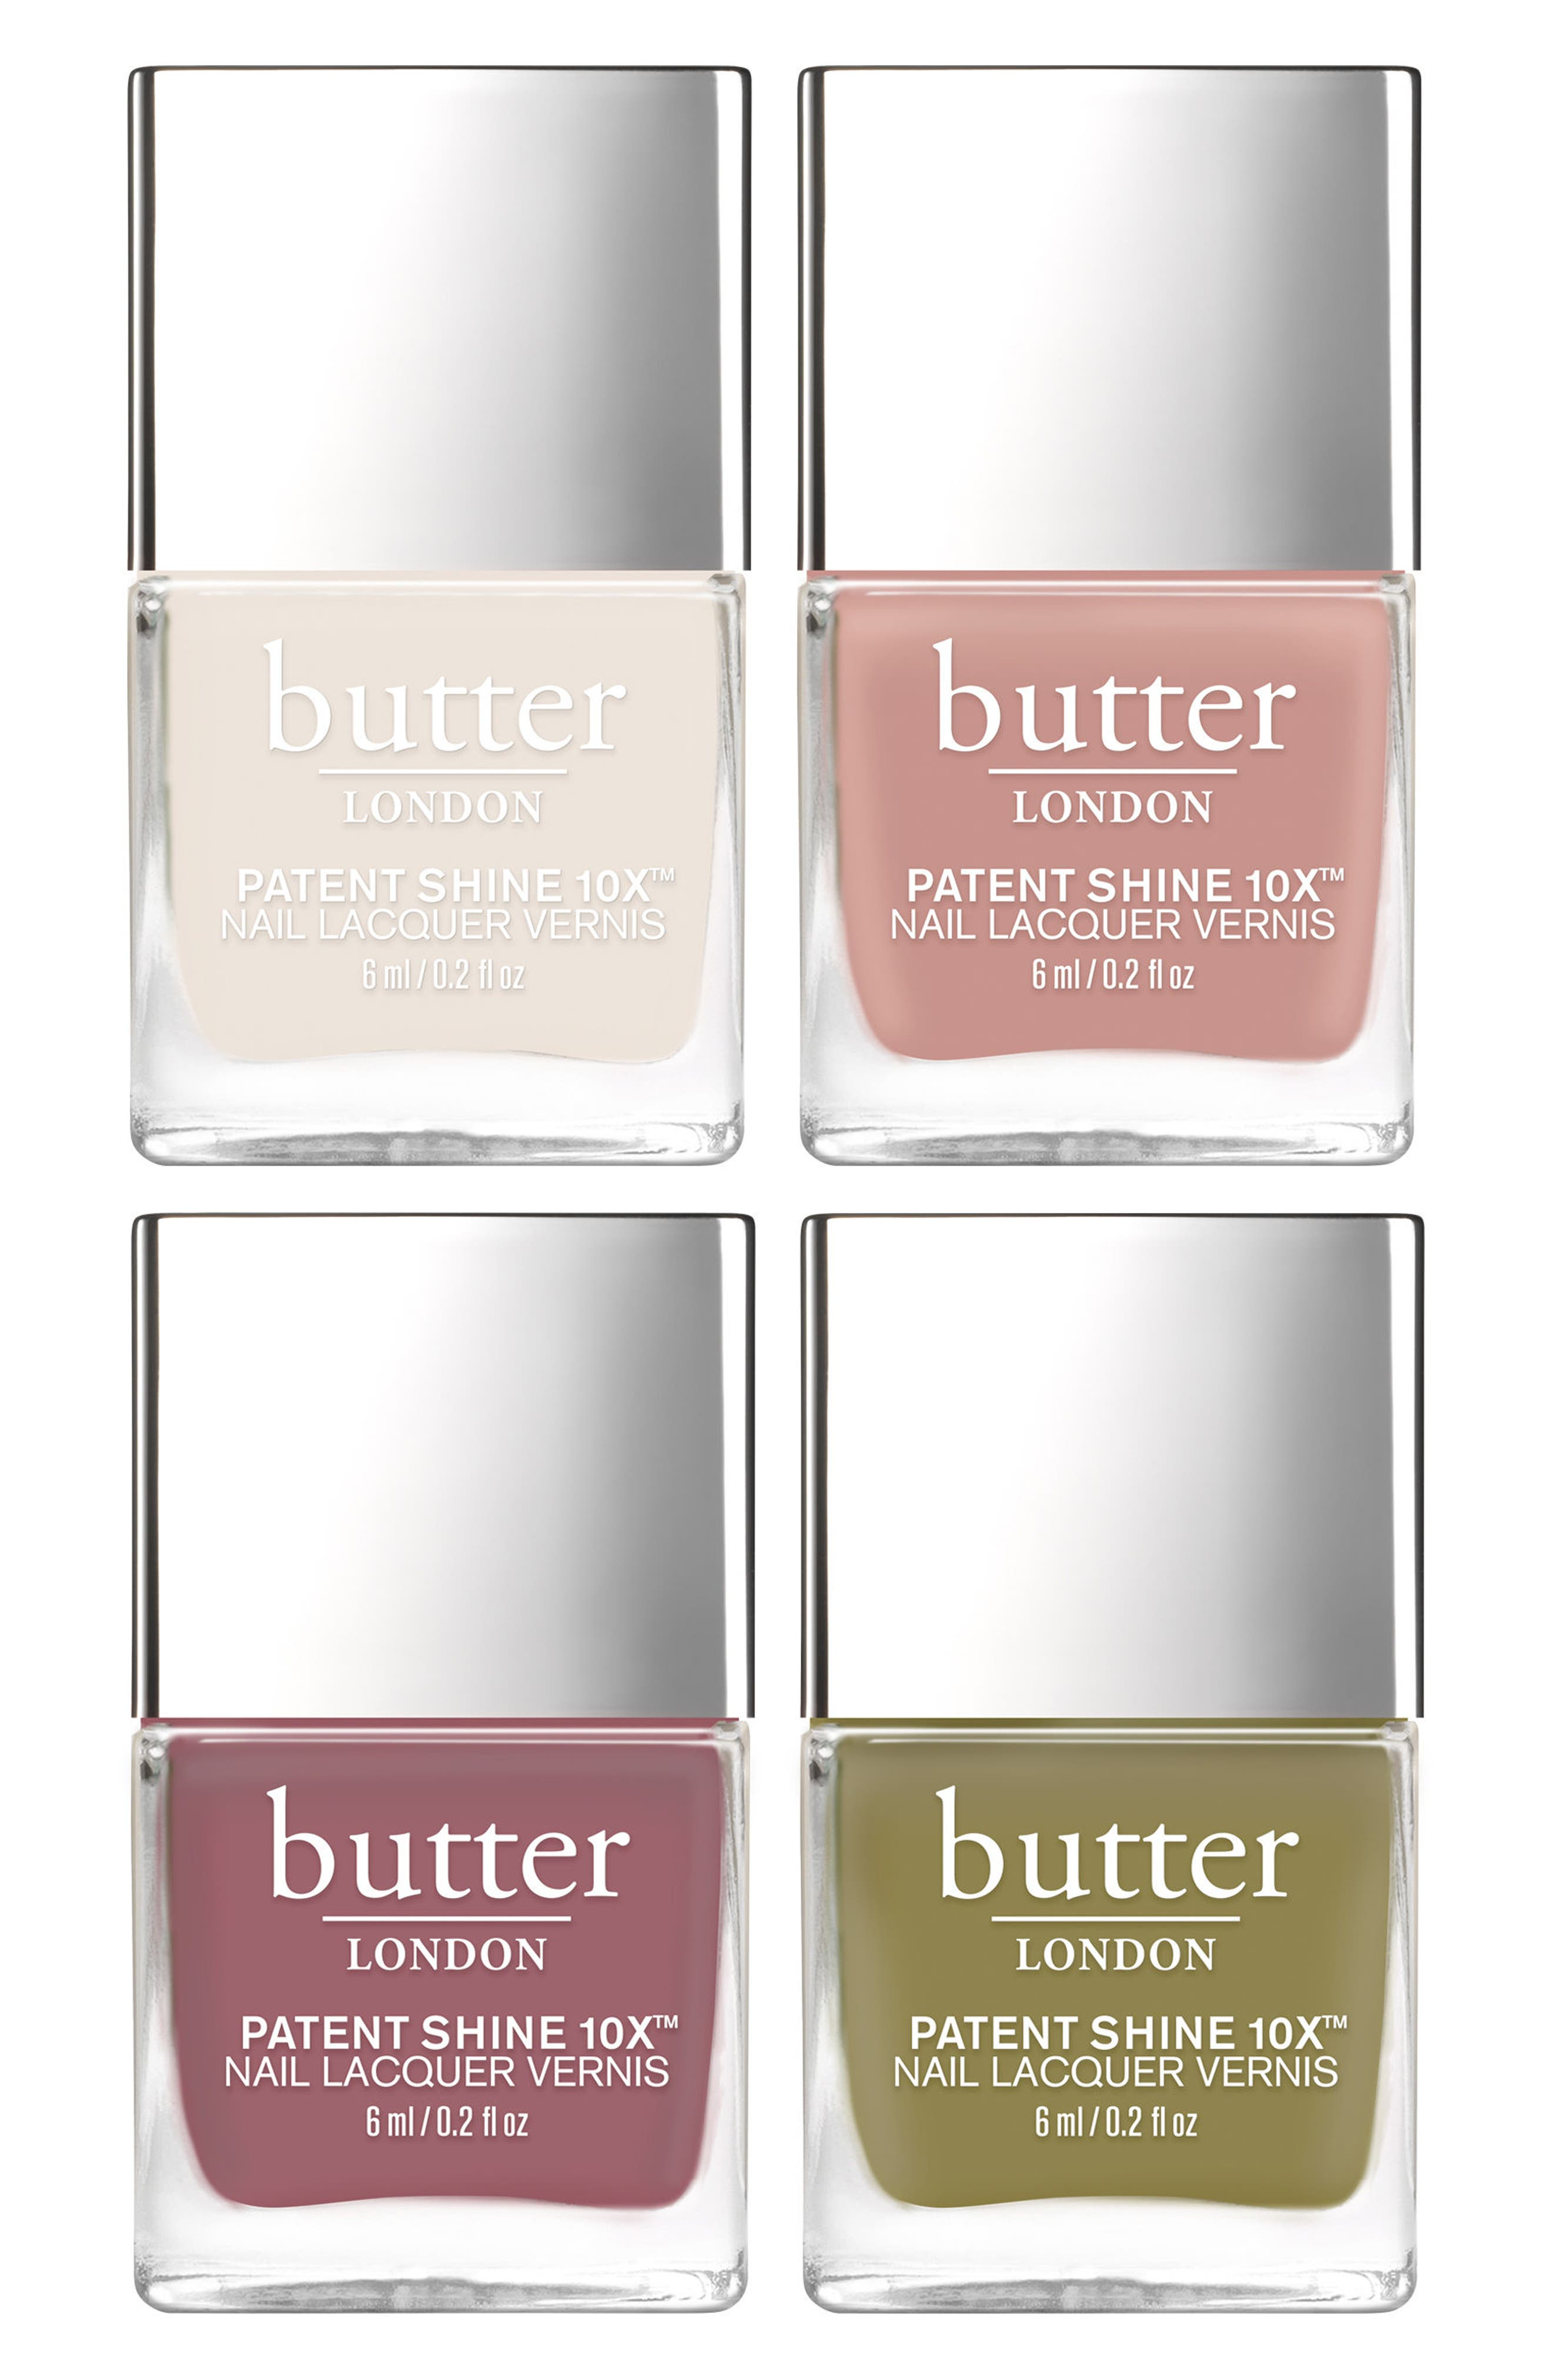 butter LONDON Royal Garden Nail Lacquer Set (Nordstrom Exclusive) ($48 Value)